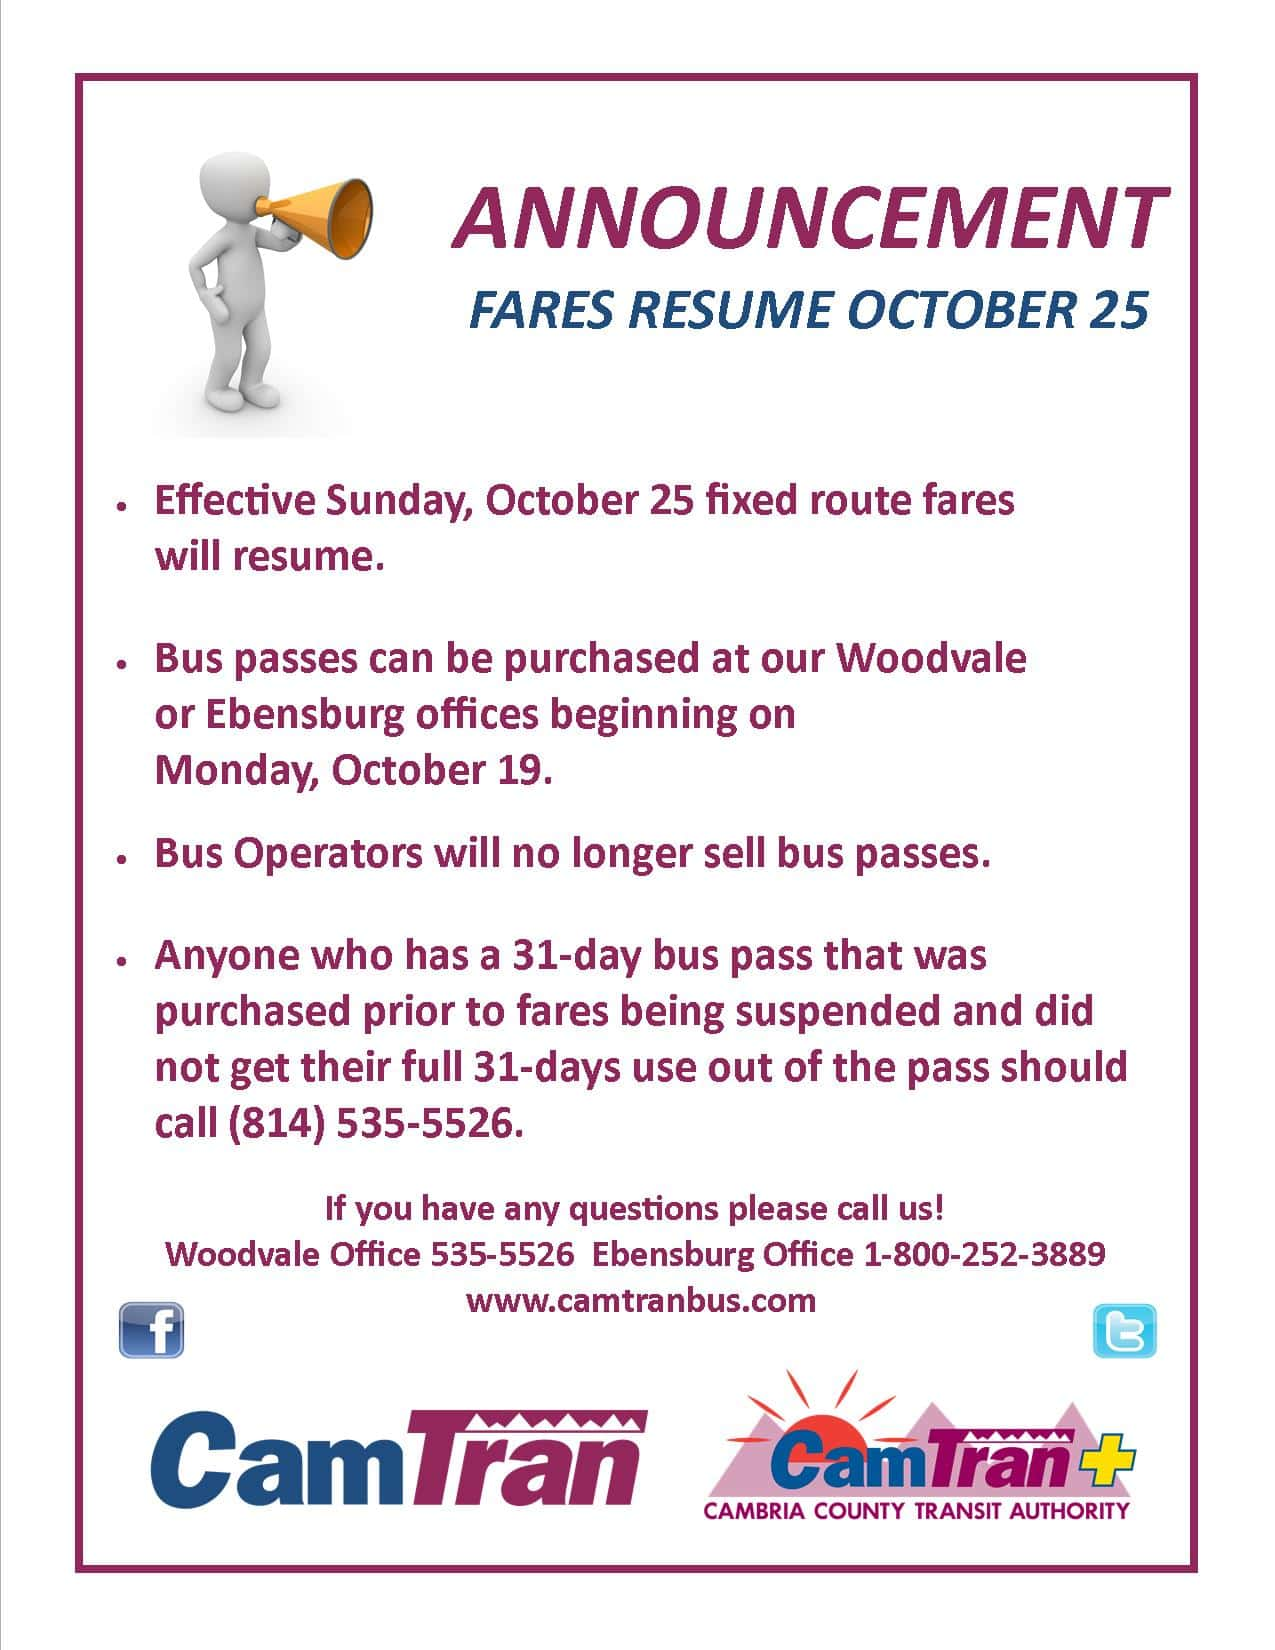 FARES RESUME ON SUNDAY, OCTOBER 25TH